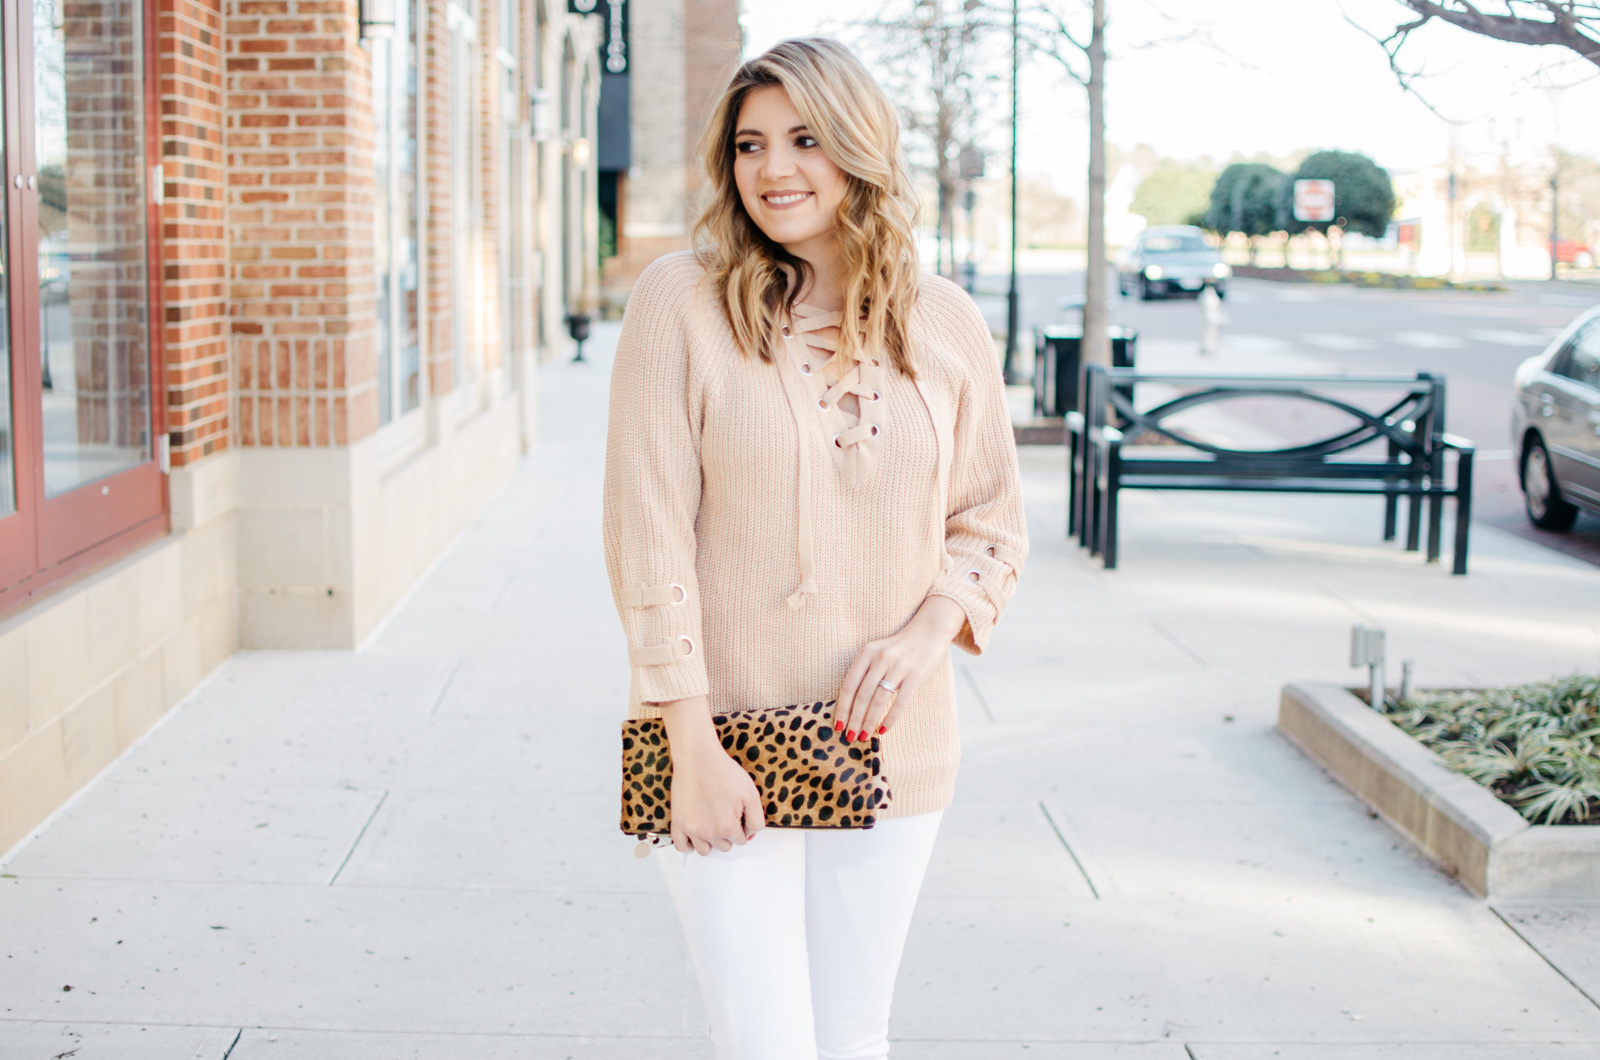 lace up sweater spring outfit - To get more cute Spring outfit ideas or to shop this look, click through to bylaurenm.com!